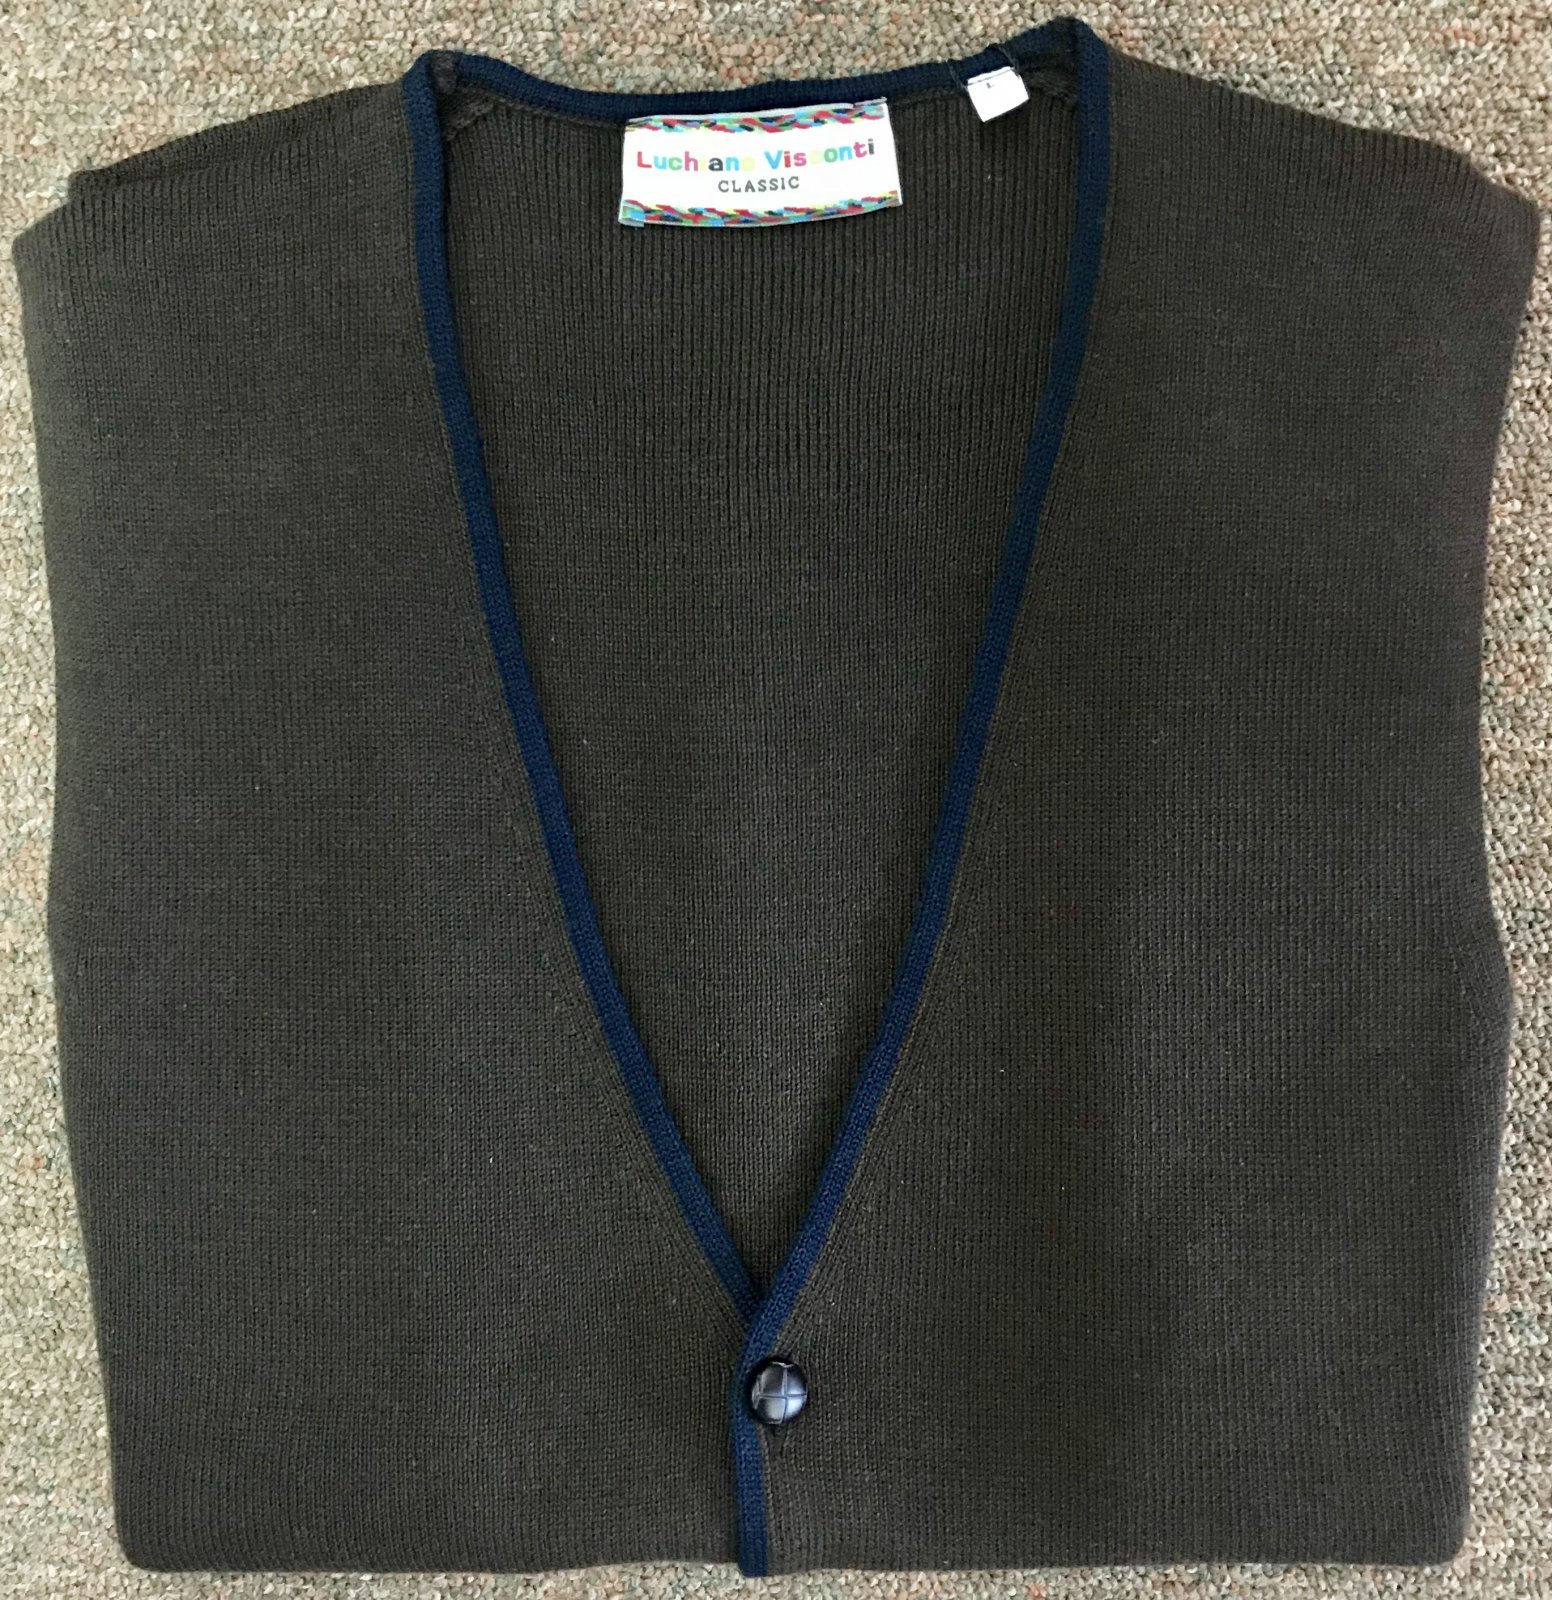 Luchiano Visconto Full Button Sw. Vest 3906